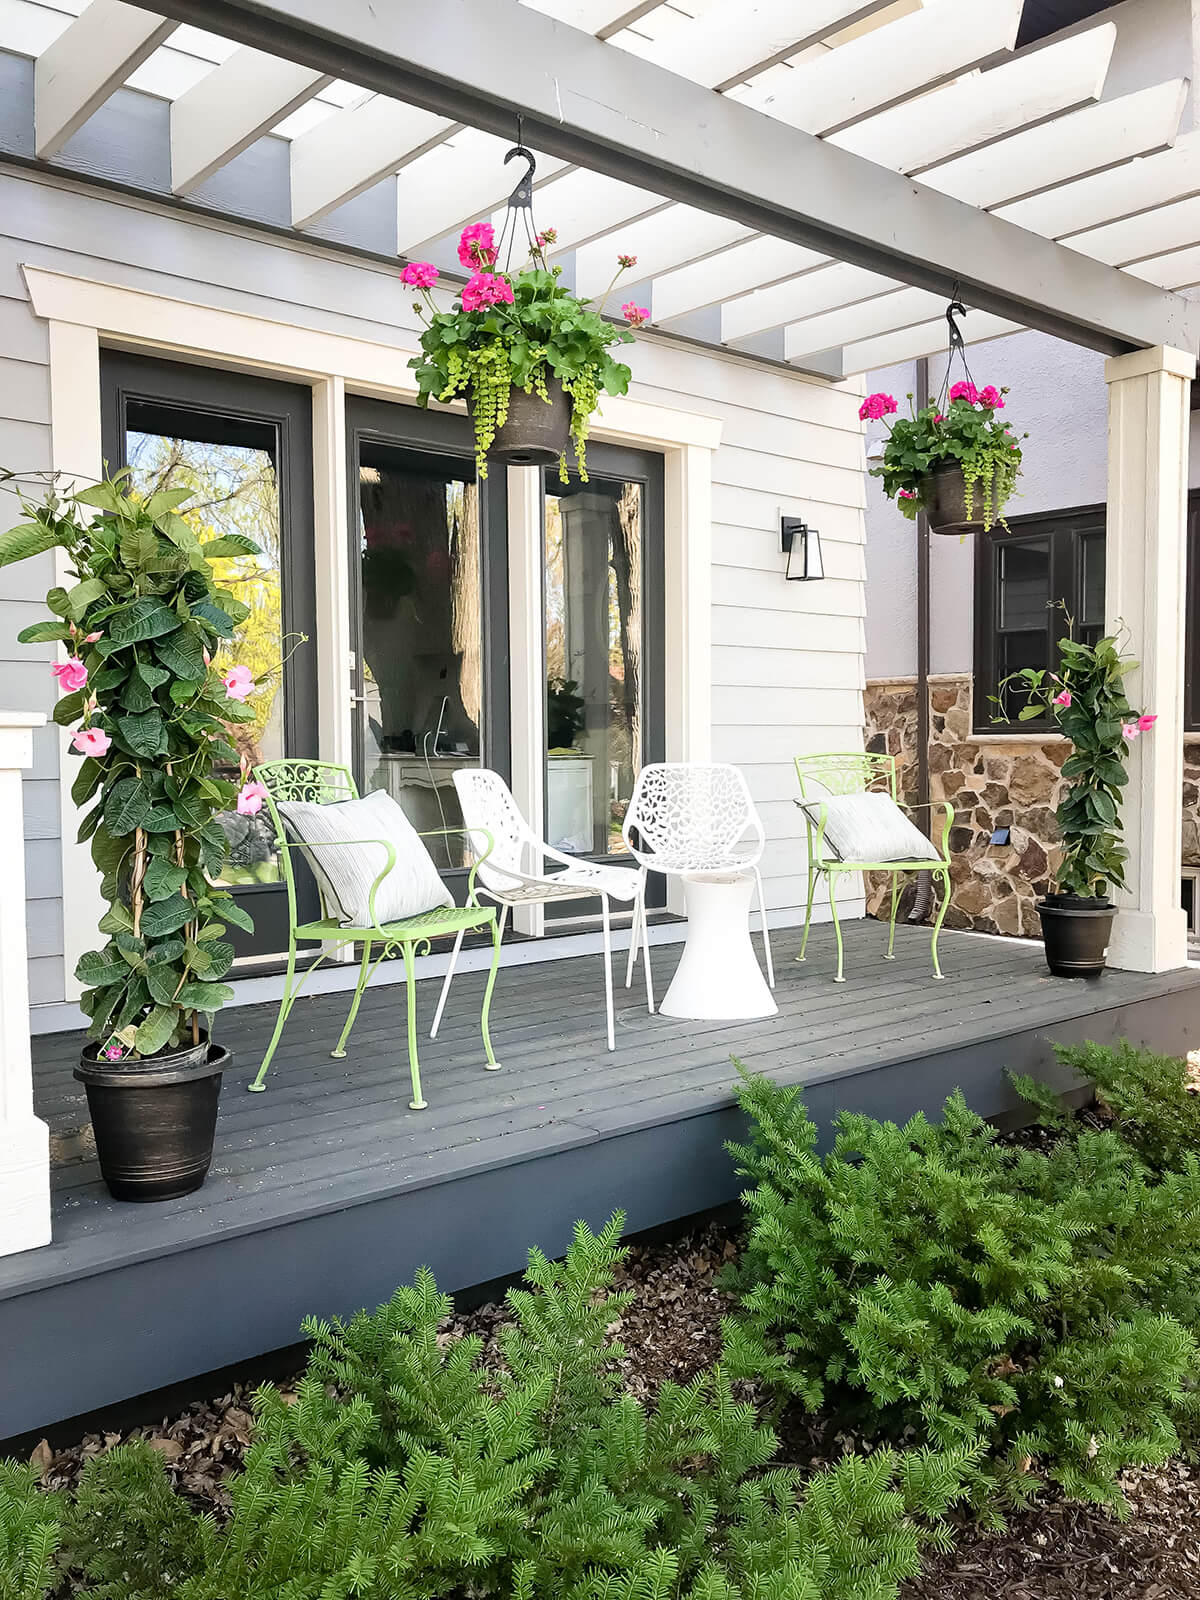 24 Best Ideas and DIY Projects for Backyard Relaxation in 2019 on Basic Patio Ideas id=85773